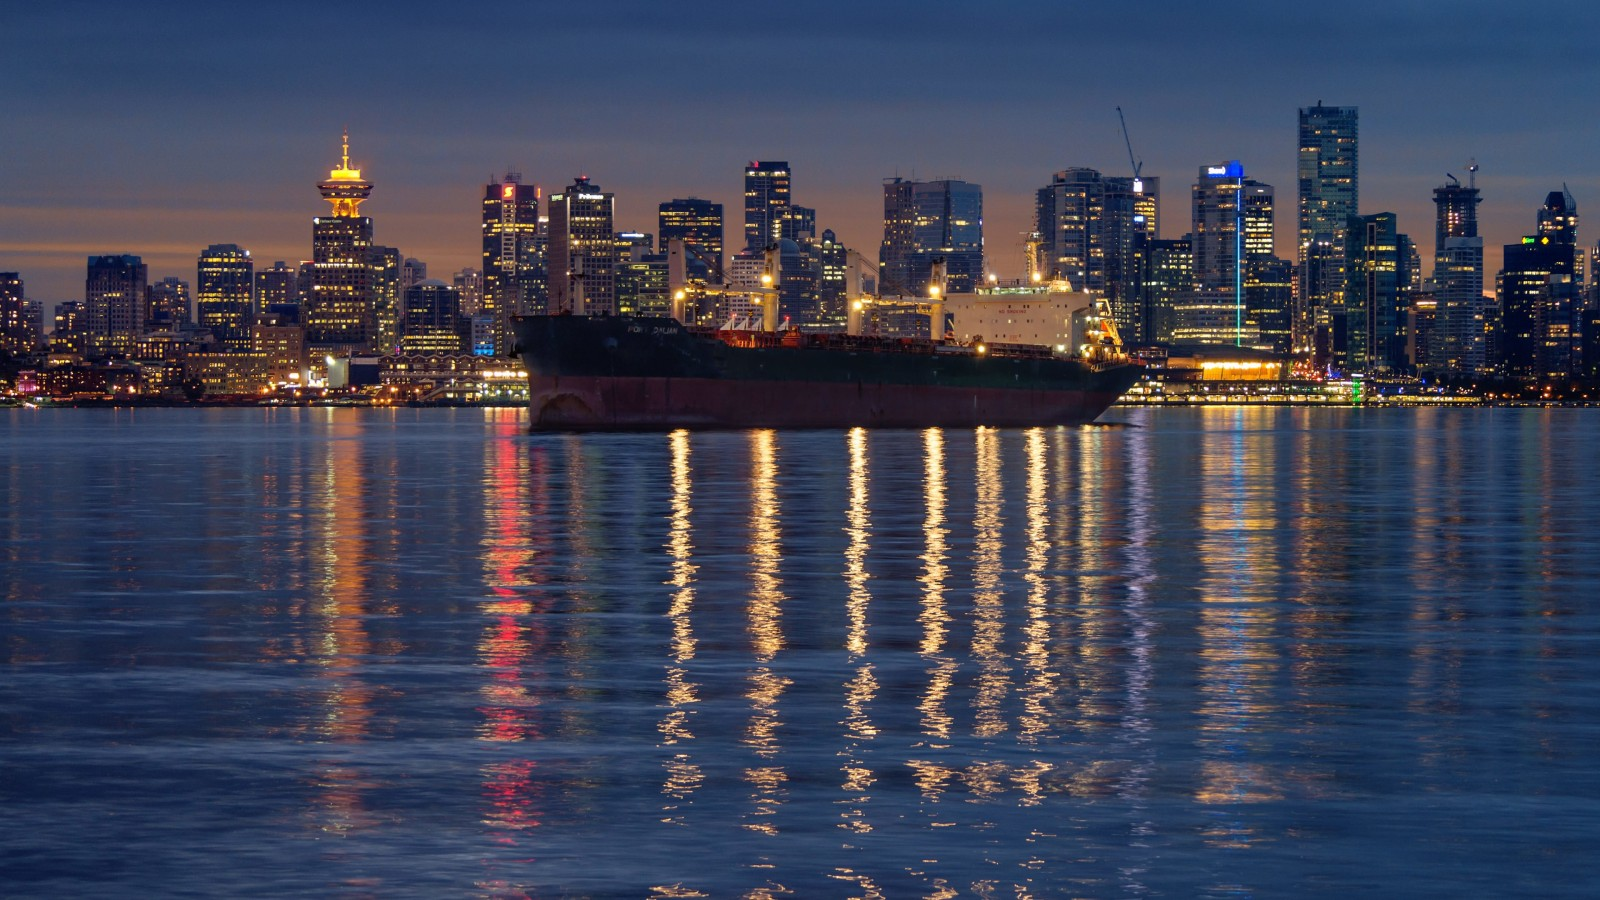 Downtown Vancouver, Canada Wallpaper for Desktop 1600x900